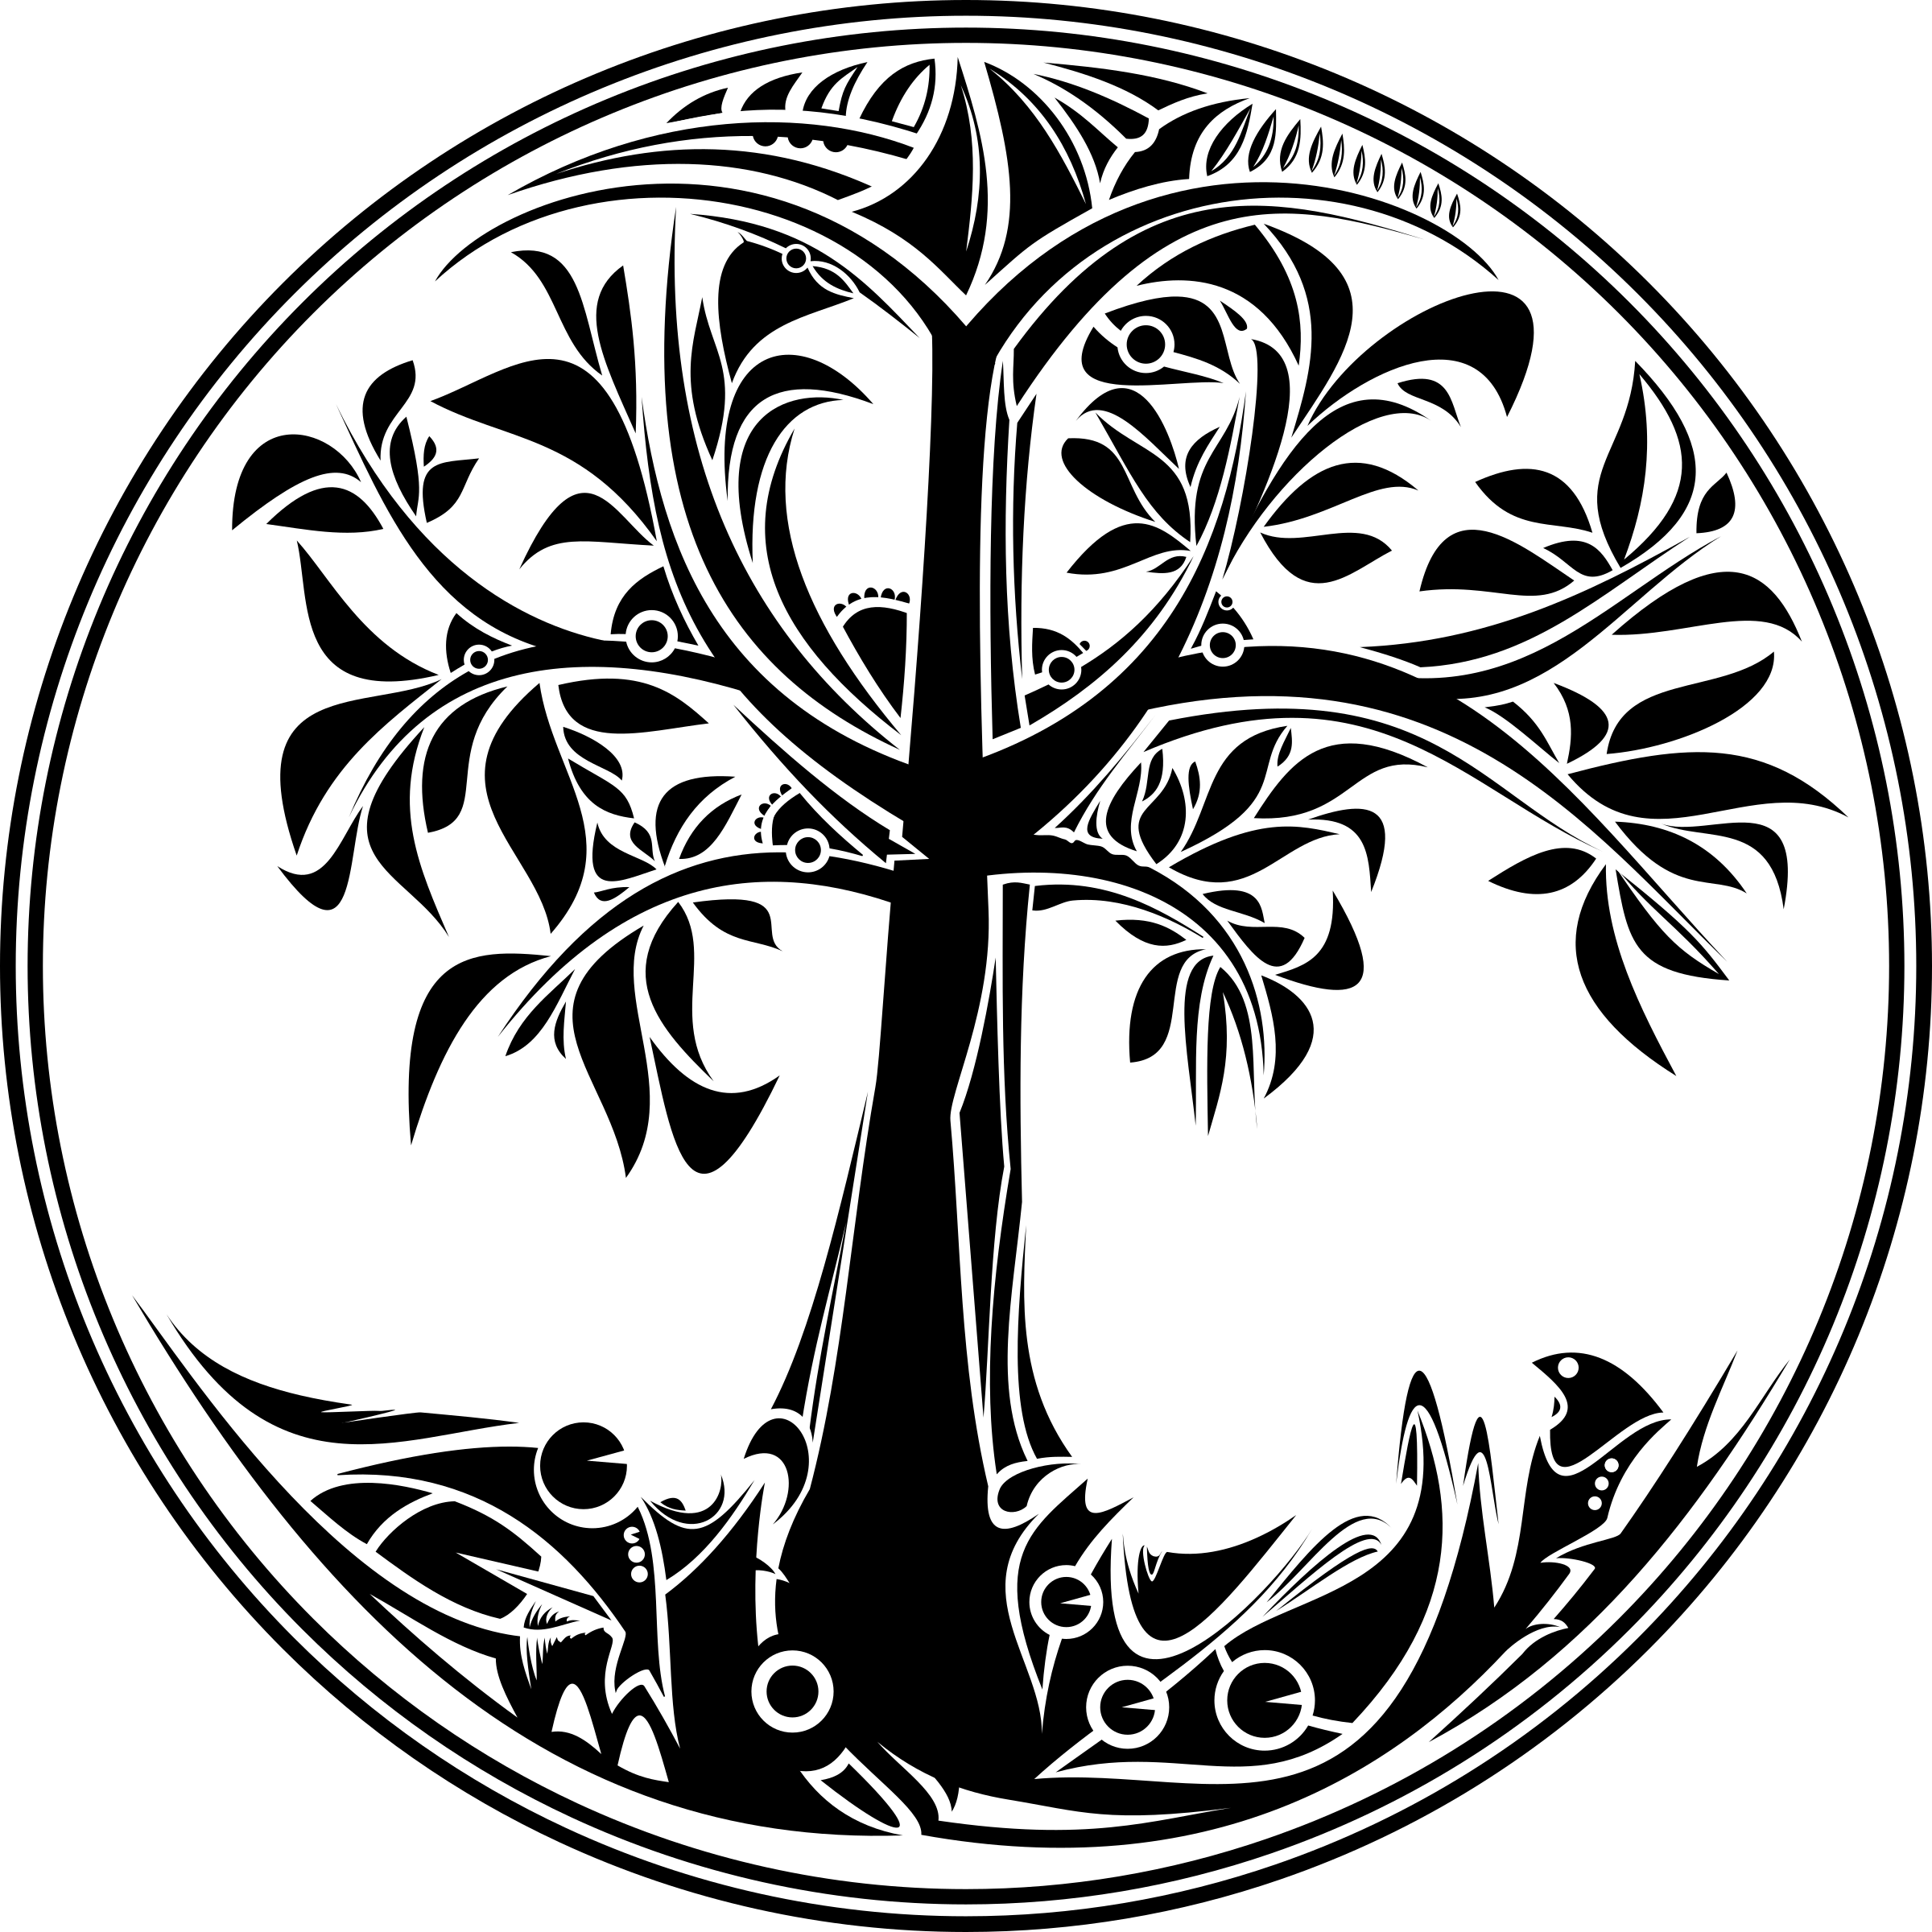 2400x2400 Tree Of Life Vector File Image